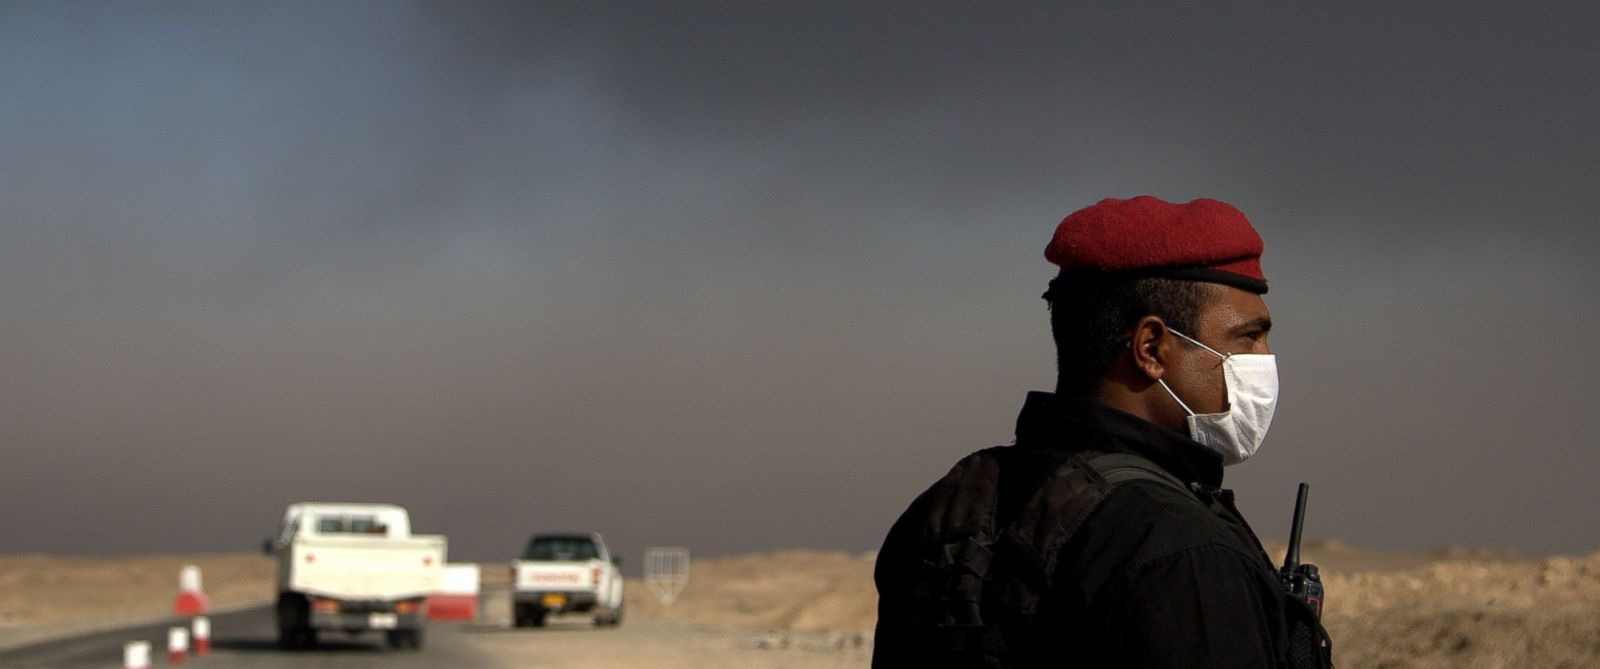 A member of the Iraqi special forces guards a checkpoint near the village of Awsaja, Iraq, as smoke from fires lit by Islamic State militants at oil wells and a sulfur plant fill the air, Oct. 22, 2016.